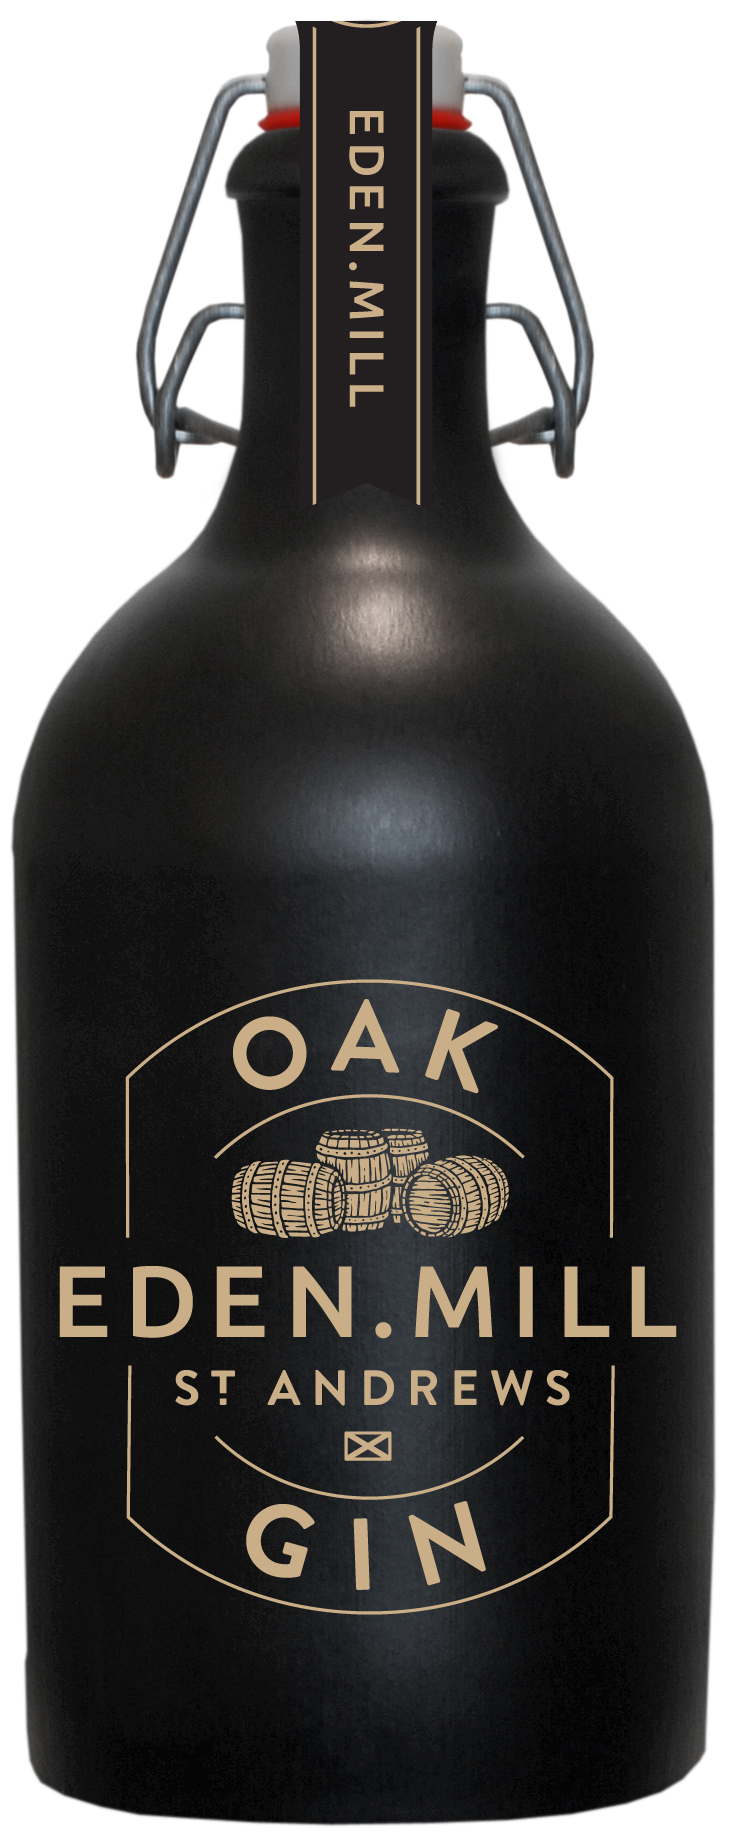 Oak Gin . Aged in Oak . 500ml . €39